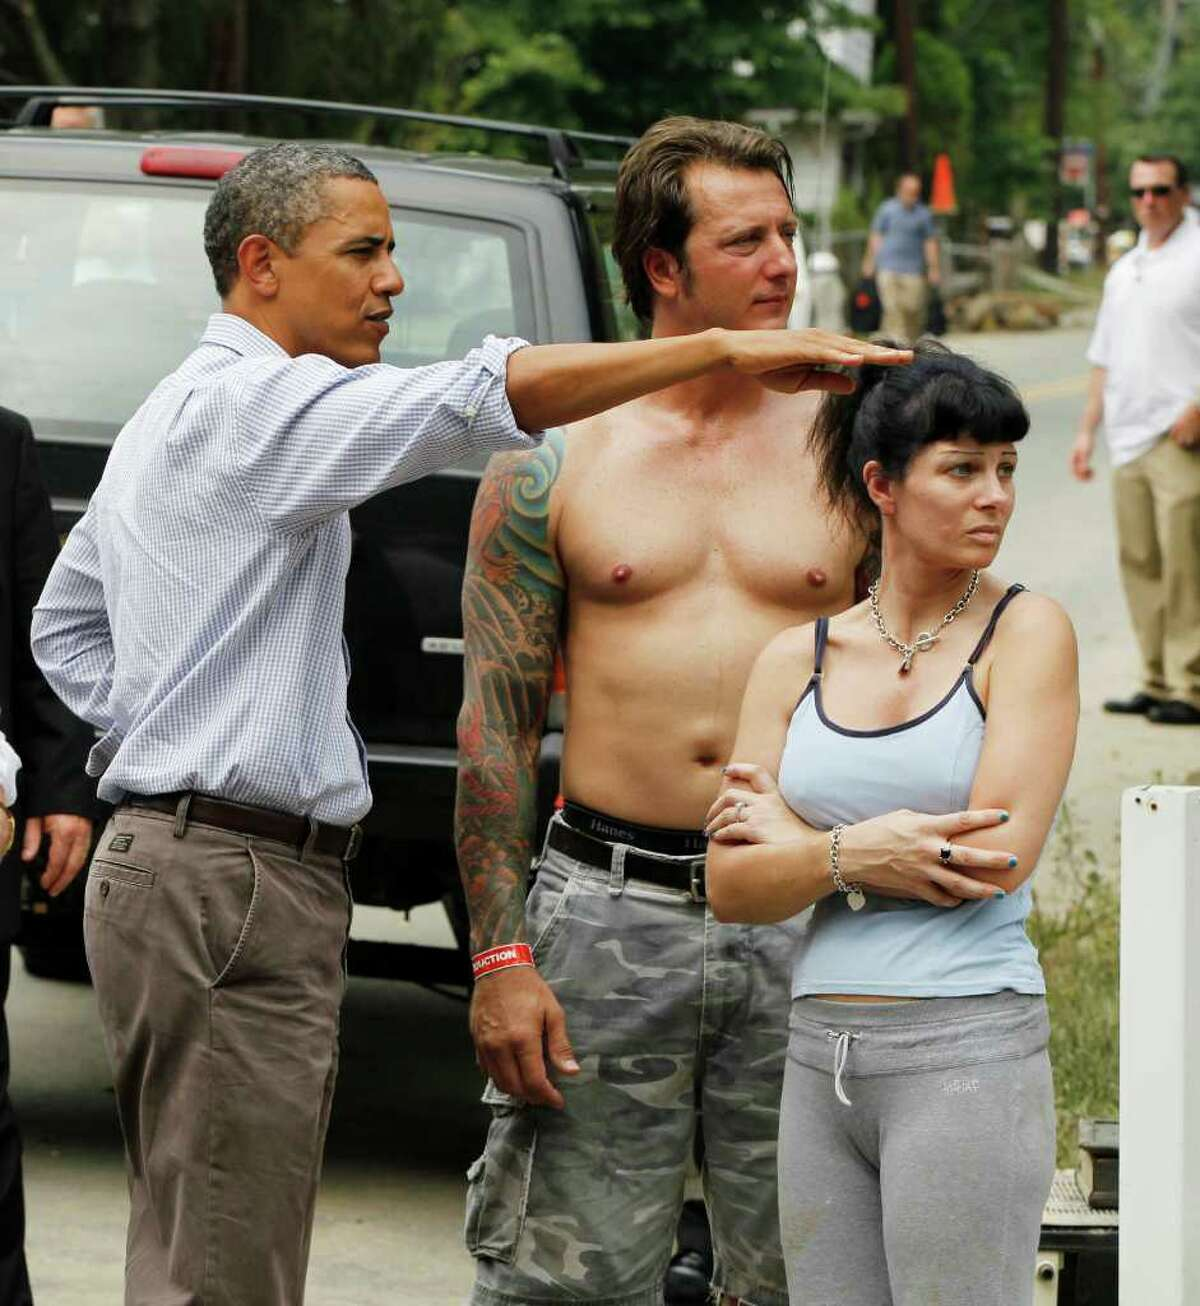 President Barack Obama meets with residents on Fayette Avenue in Wayne, N.J., Sunday, Sept. 4, 2011, as he visits flood damage caused by Hurricane Irene. (AP Photo/Charles Dharapak)